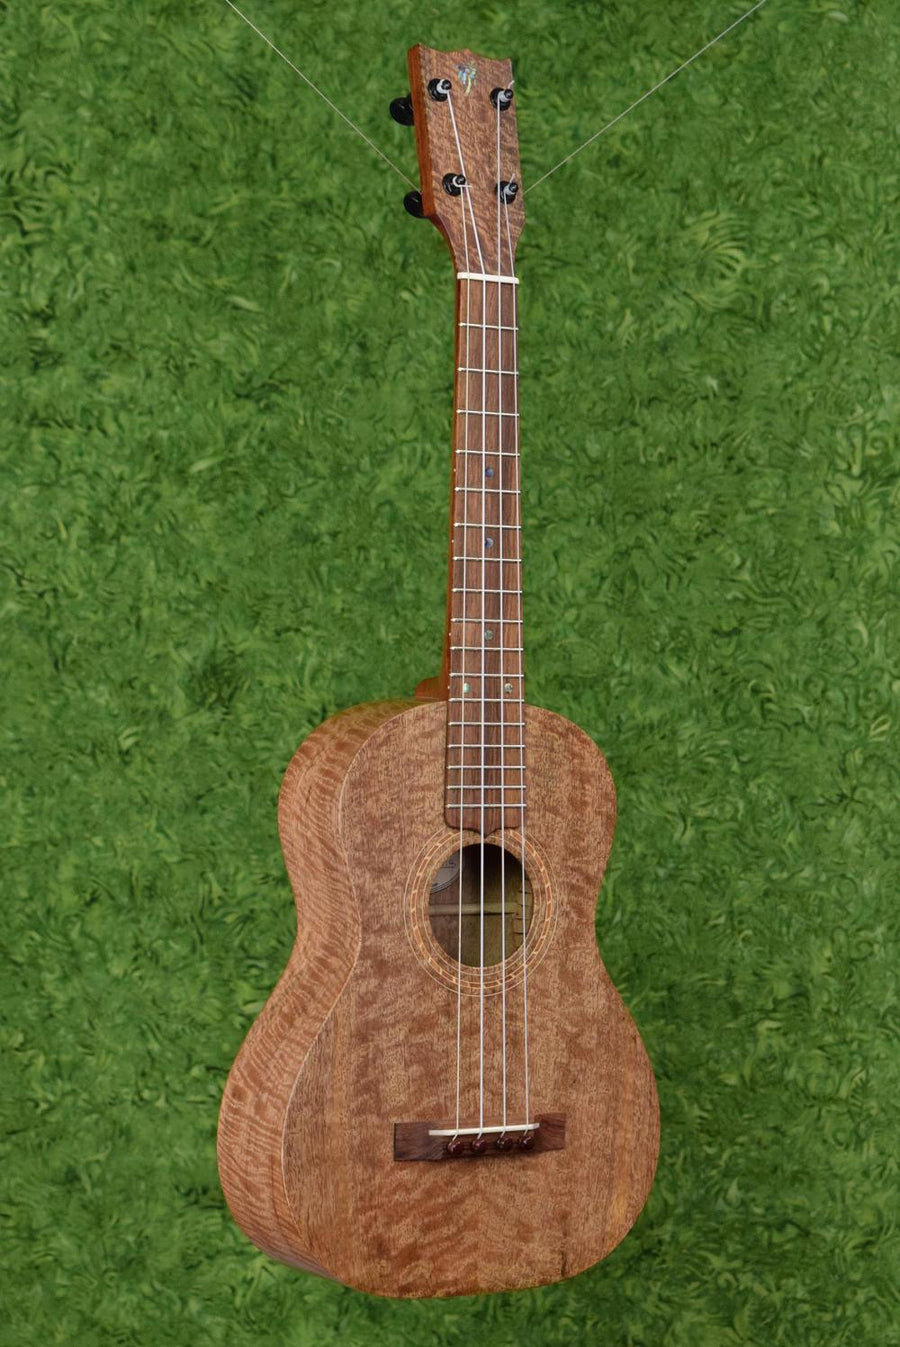 Palm Tree Ukulele No. 118 (Style 1 Mango Tenor)